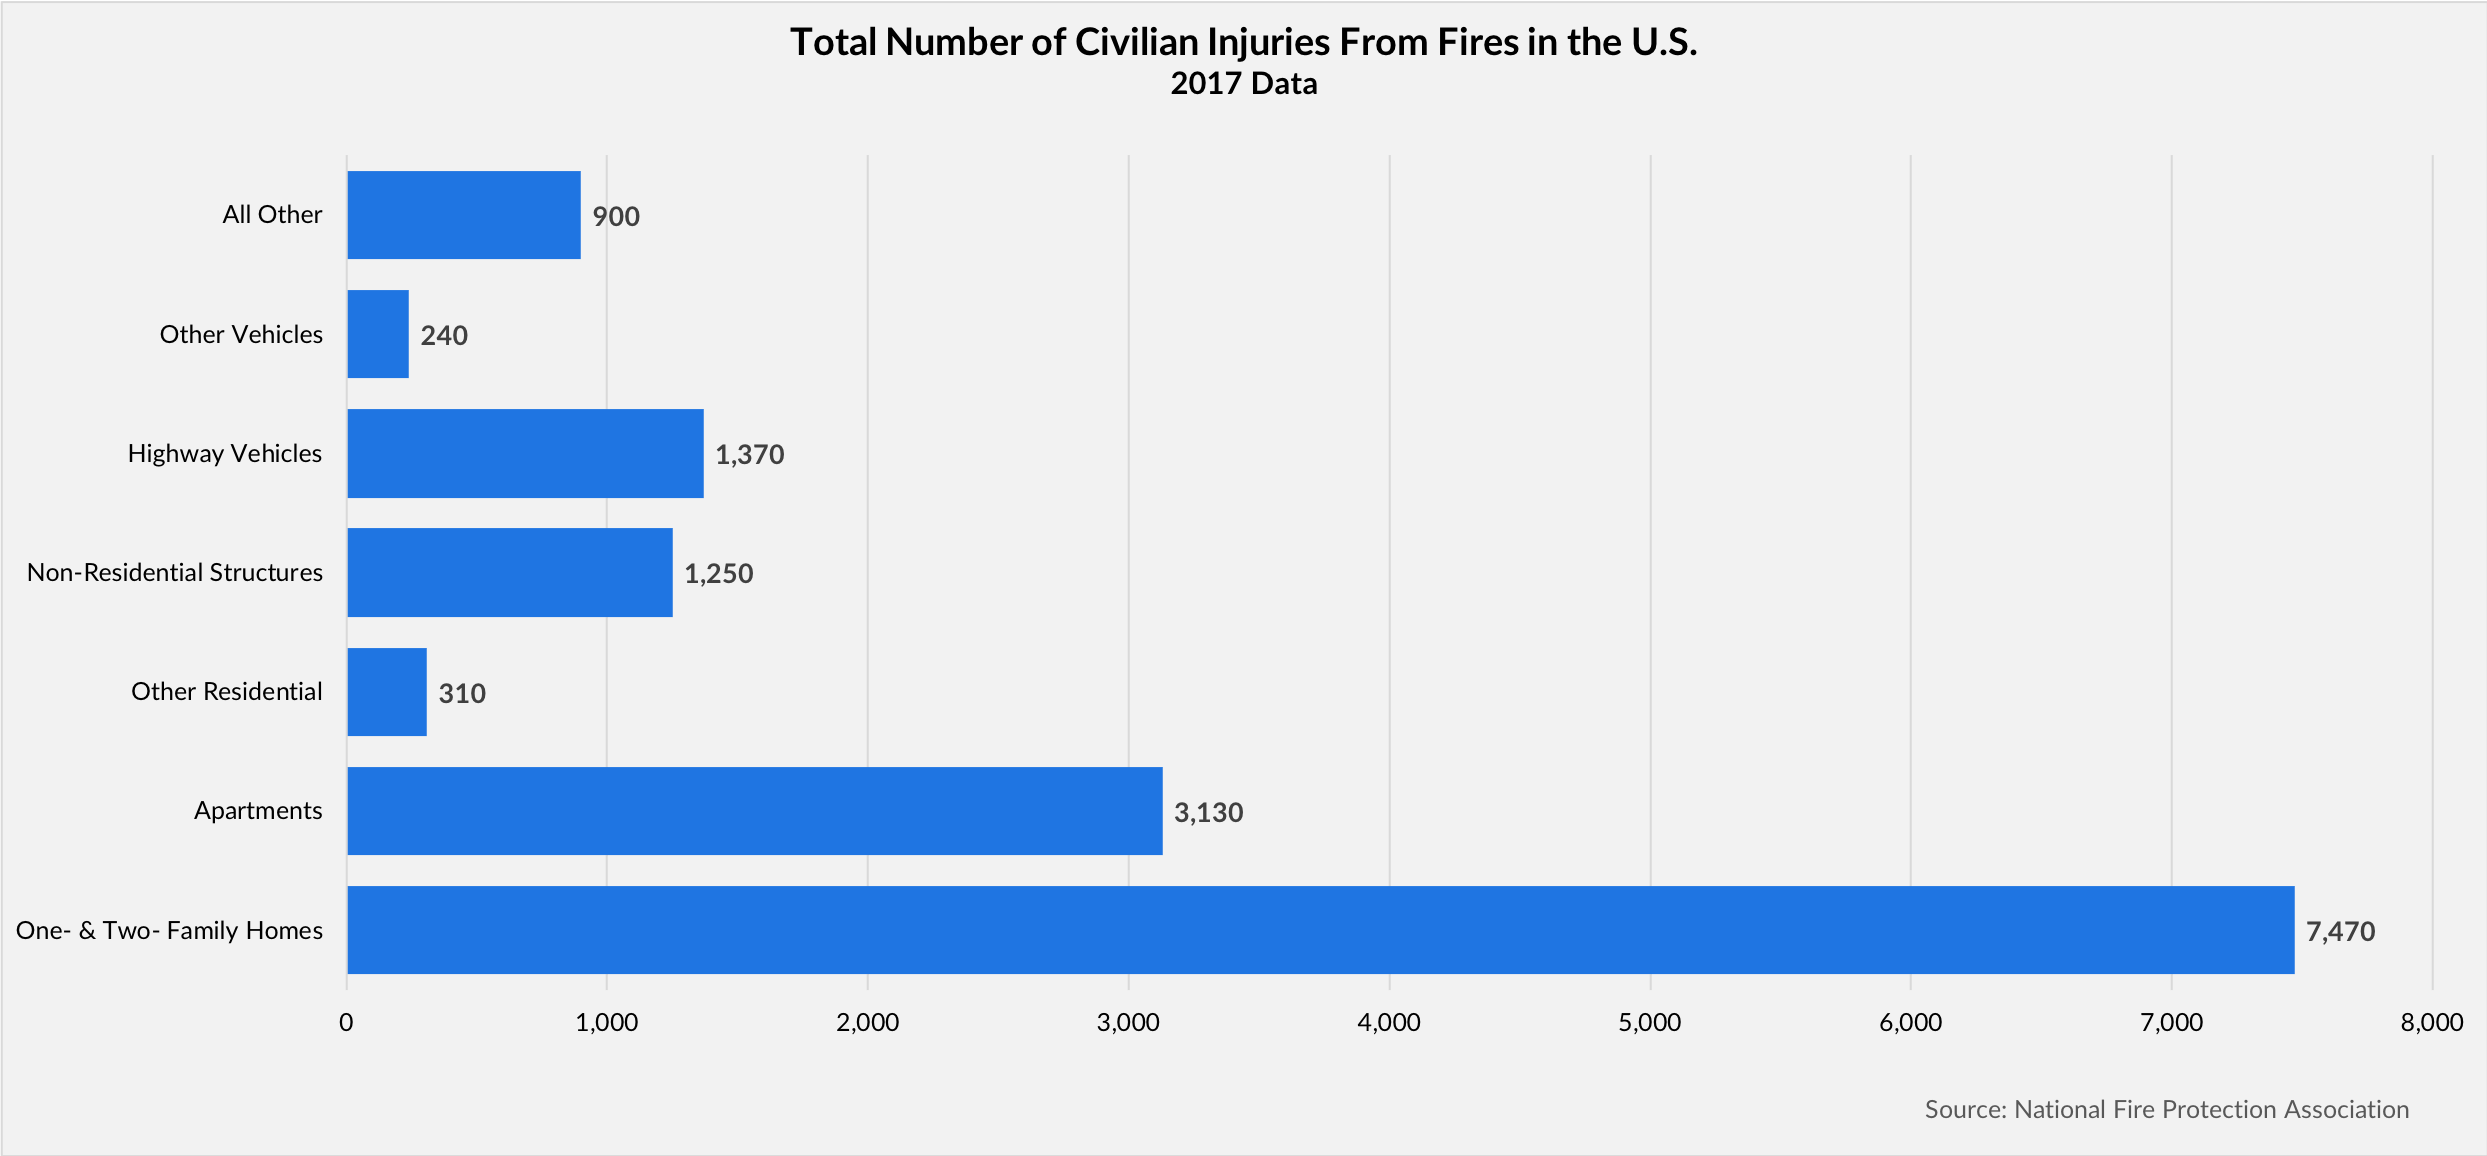 Total Number of Civilian Injuries from Fires in the U.S. chart